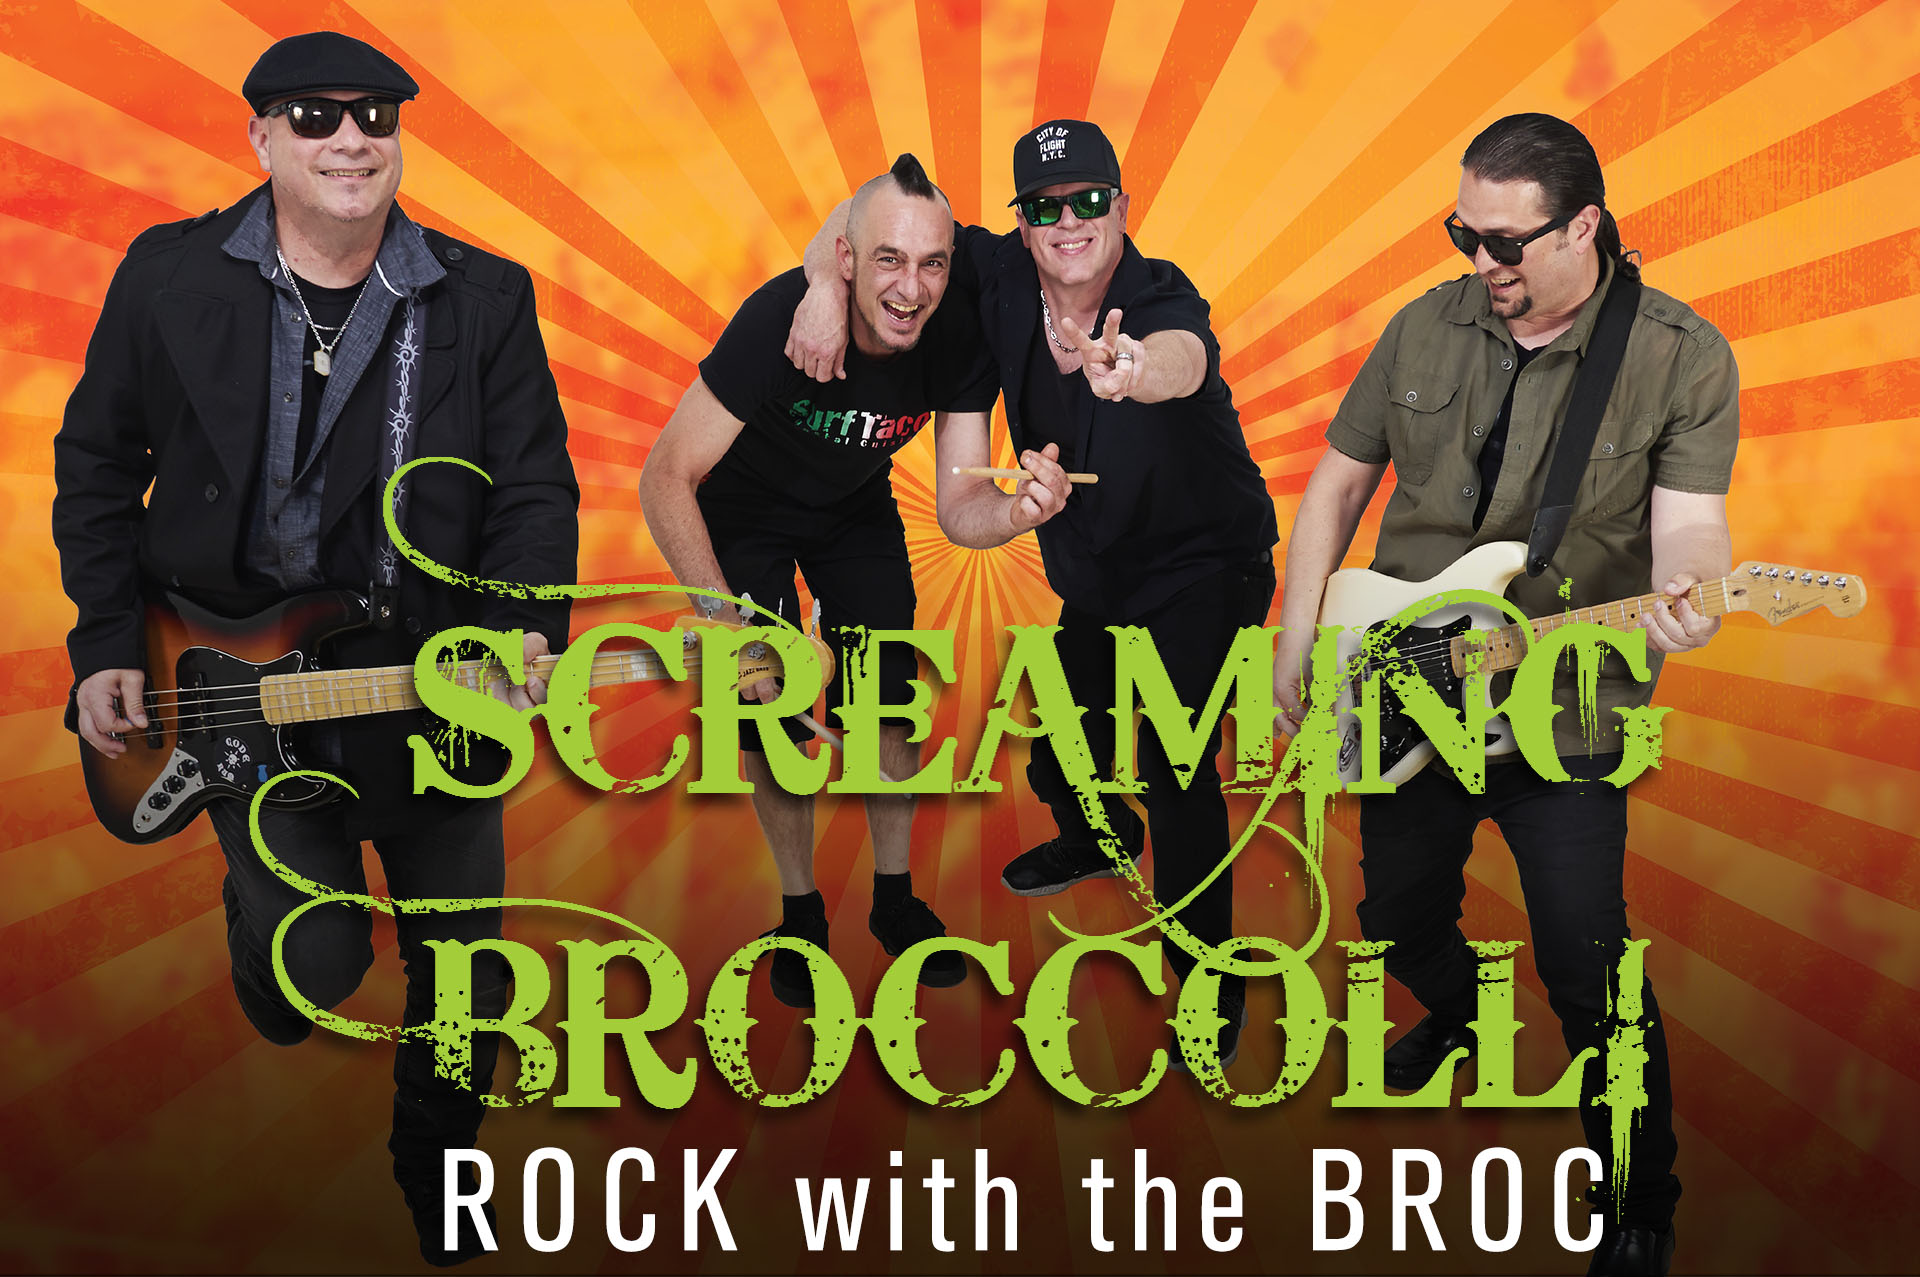 screamingbroccoli-homepage 03